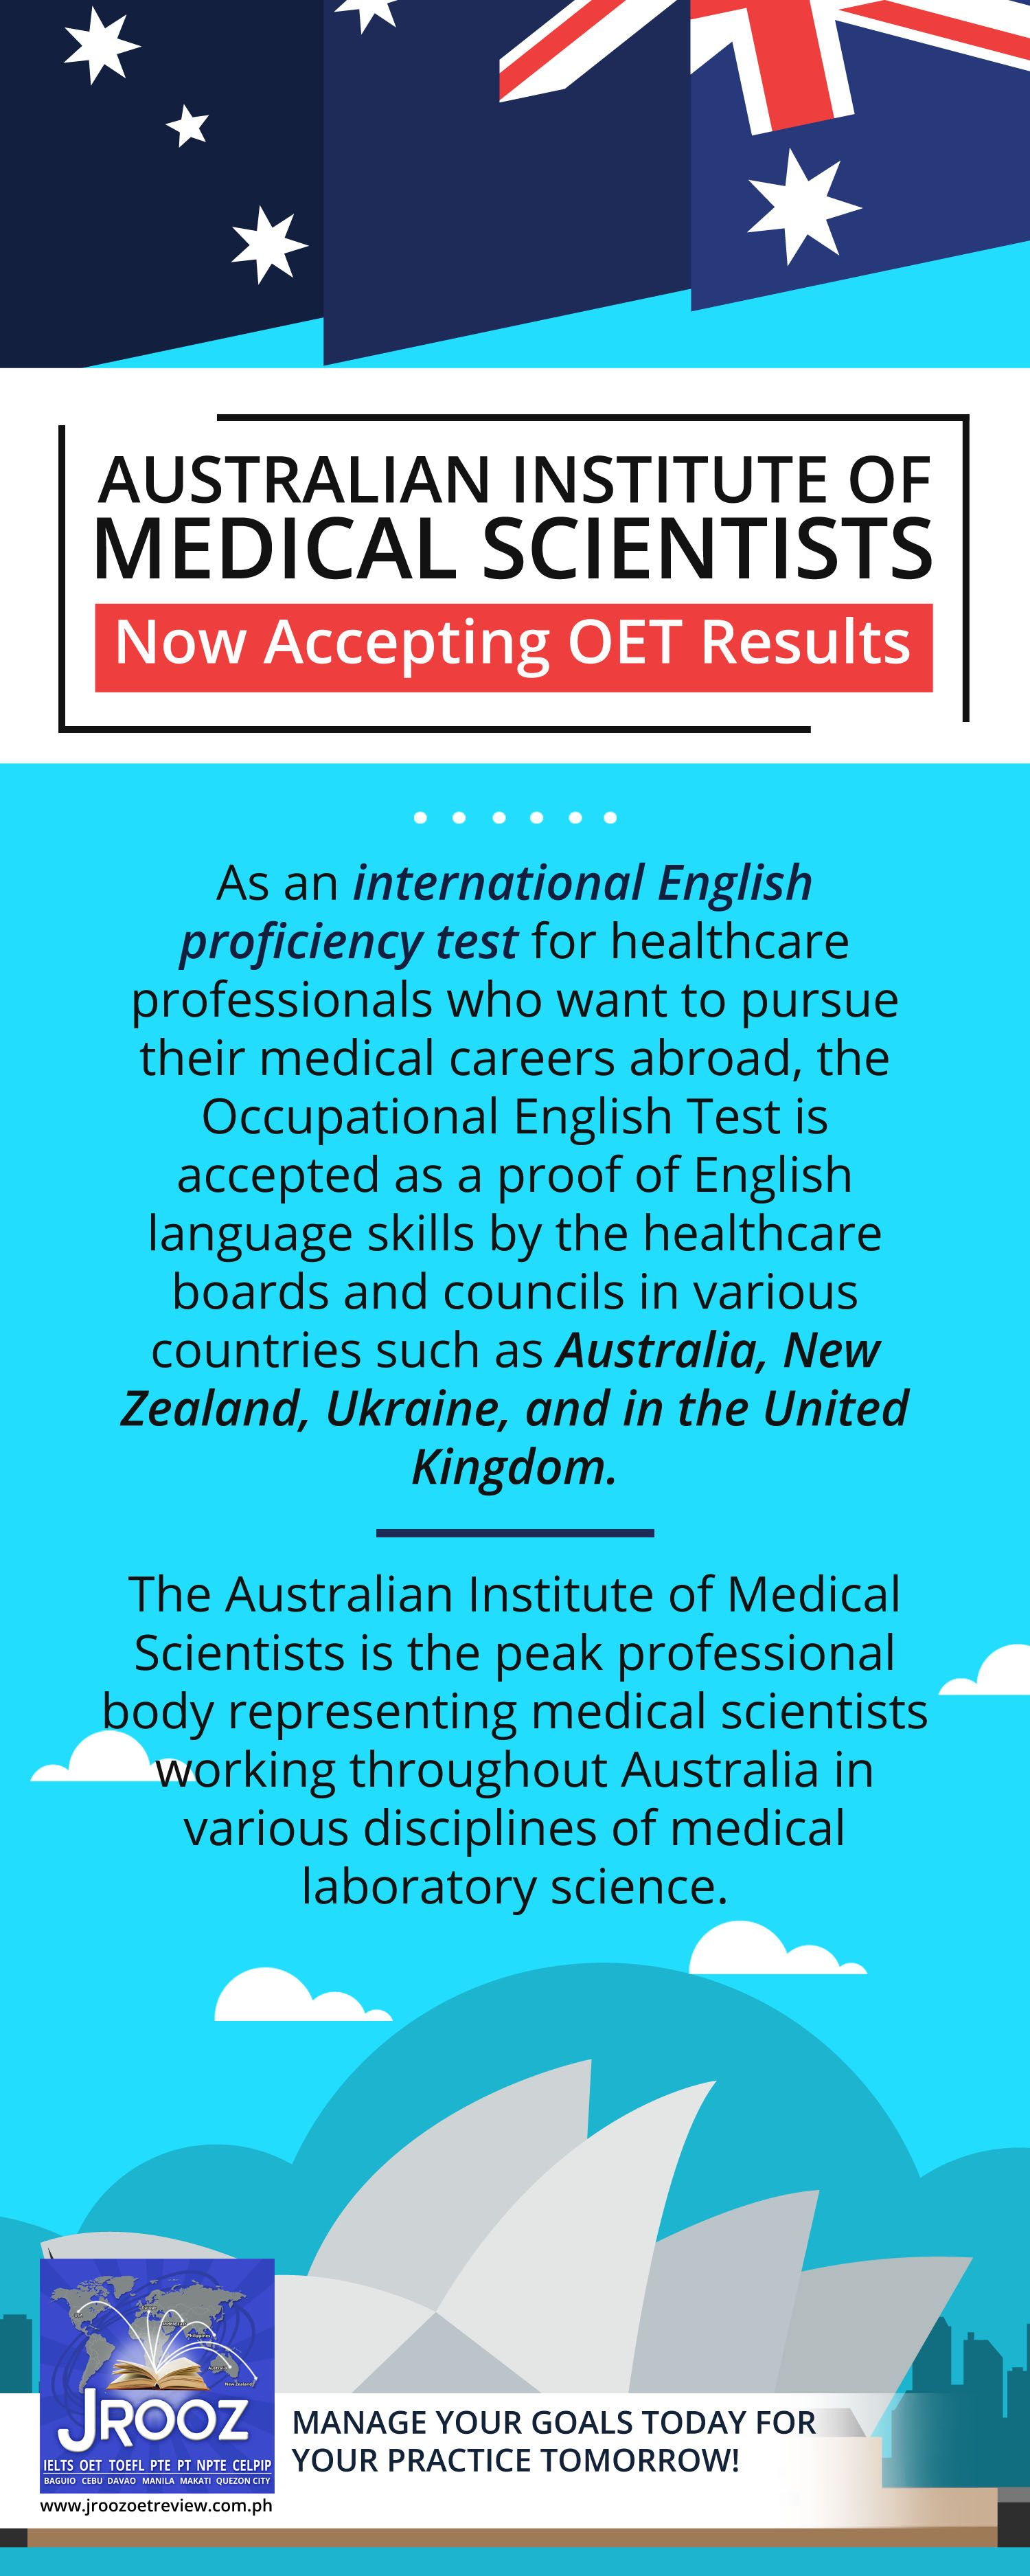 Australian Institute of Medical Scientists Now Accepting